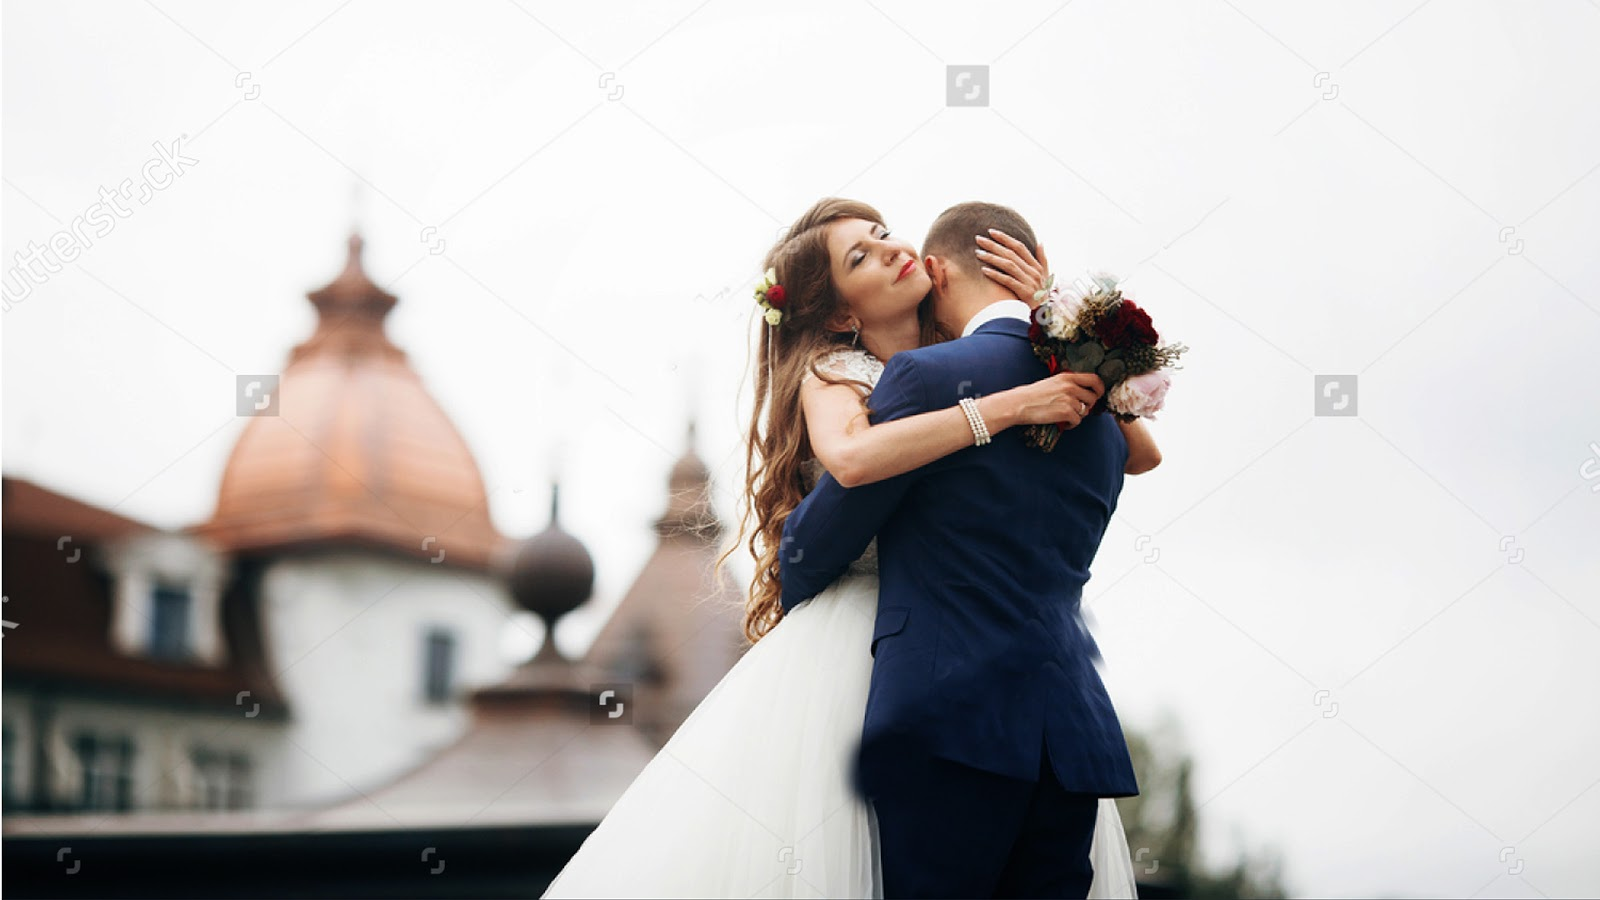 Wallpaper download free image search 2017 - Happy Valentine Hug Day 2017 Hd Photo